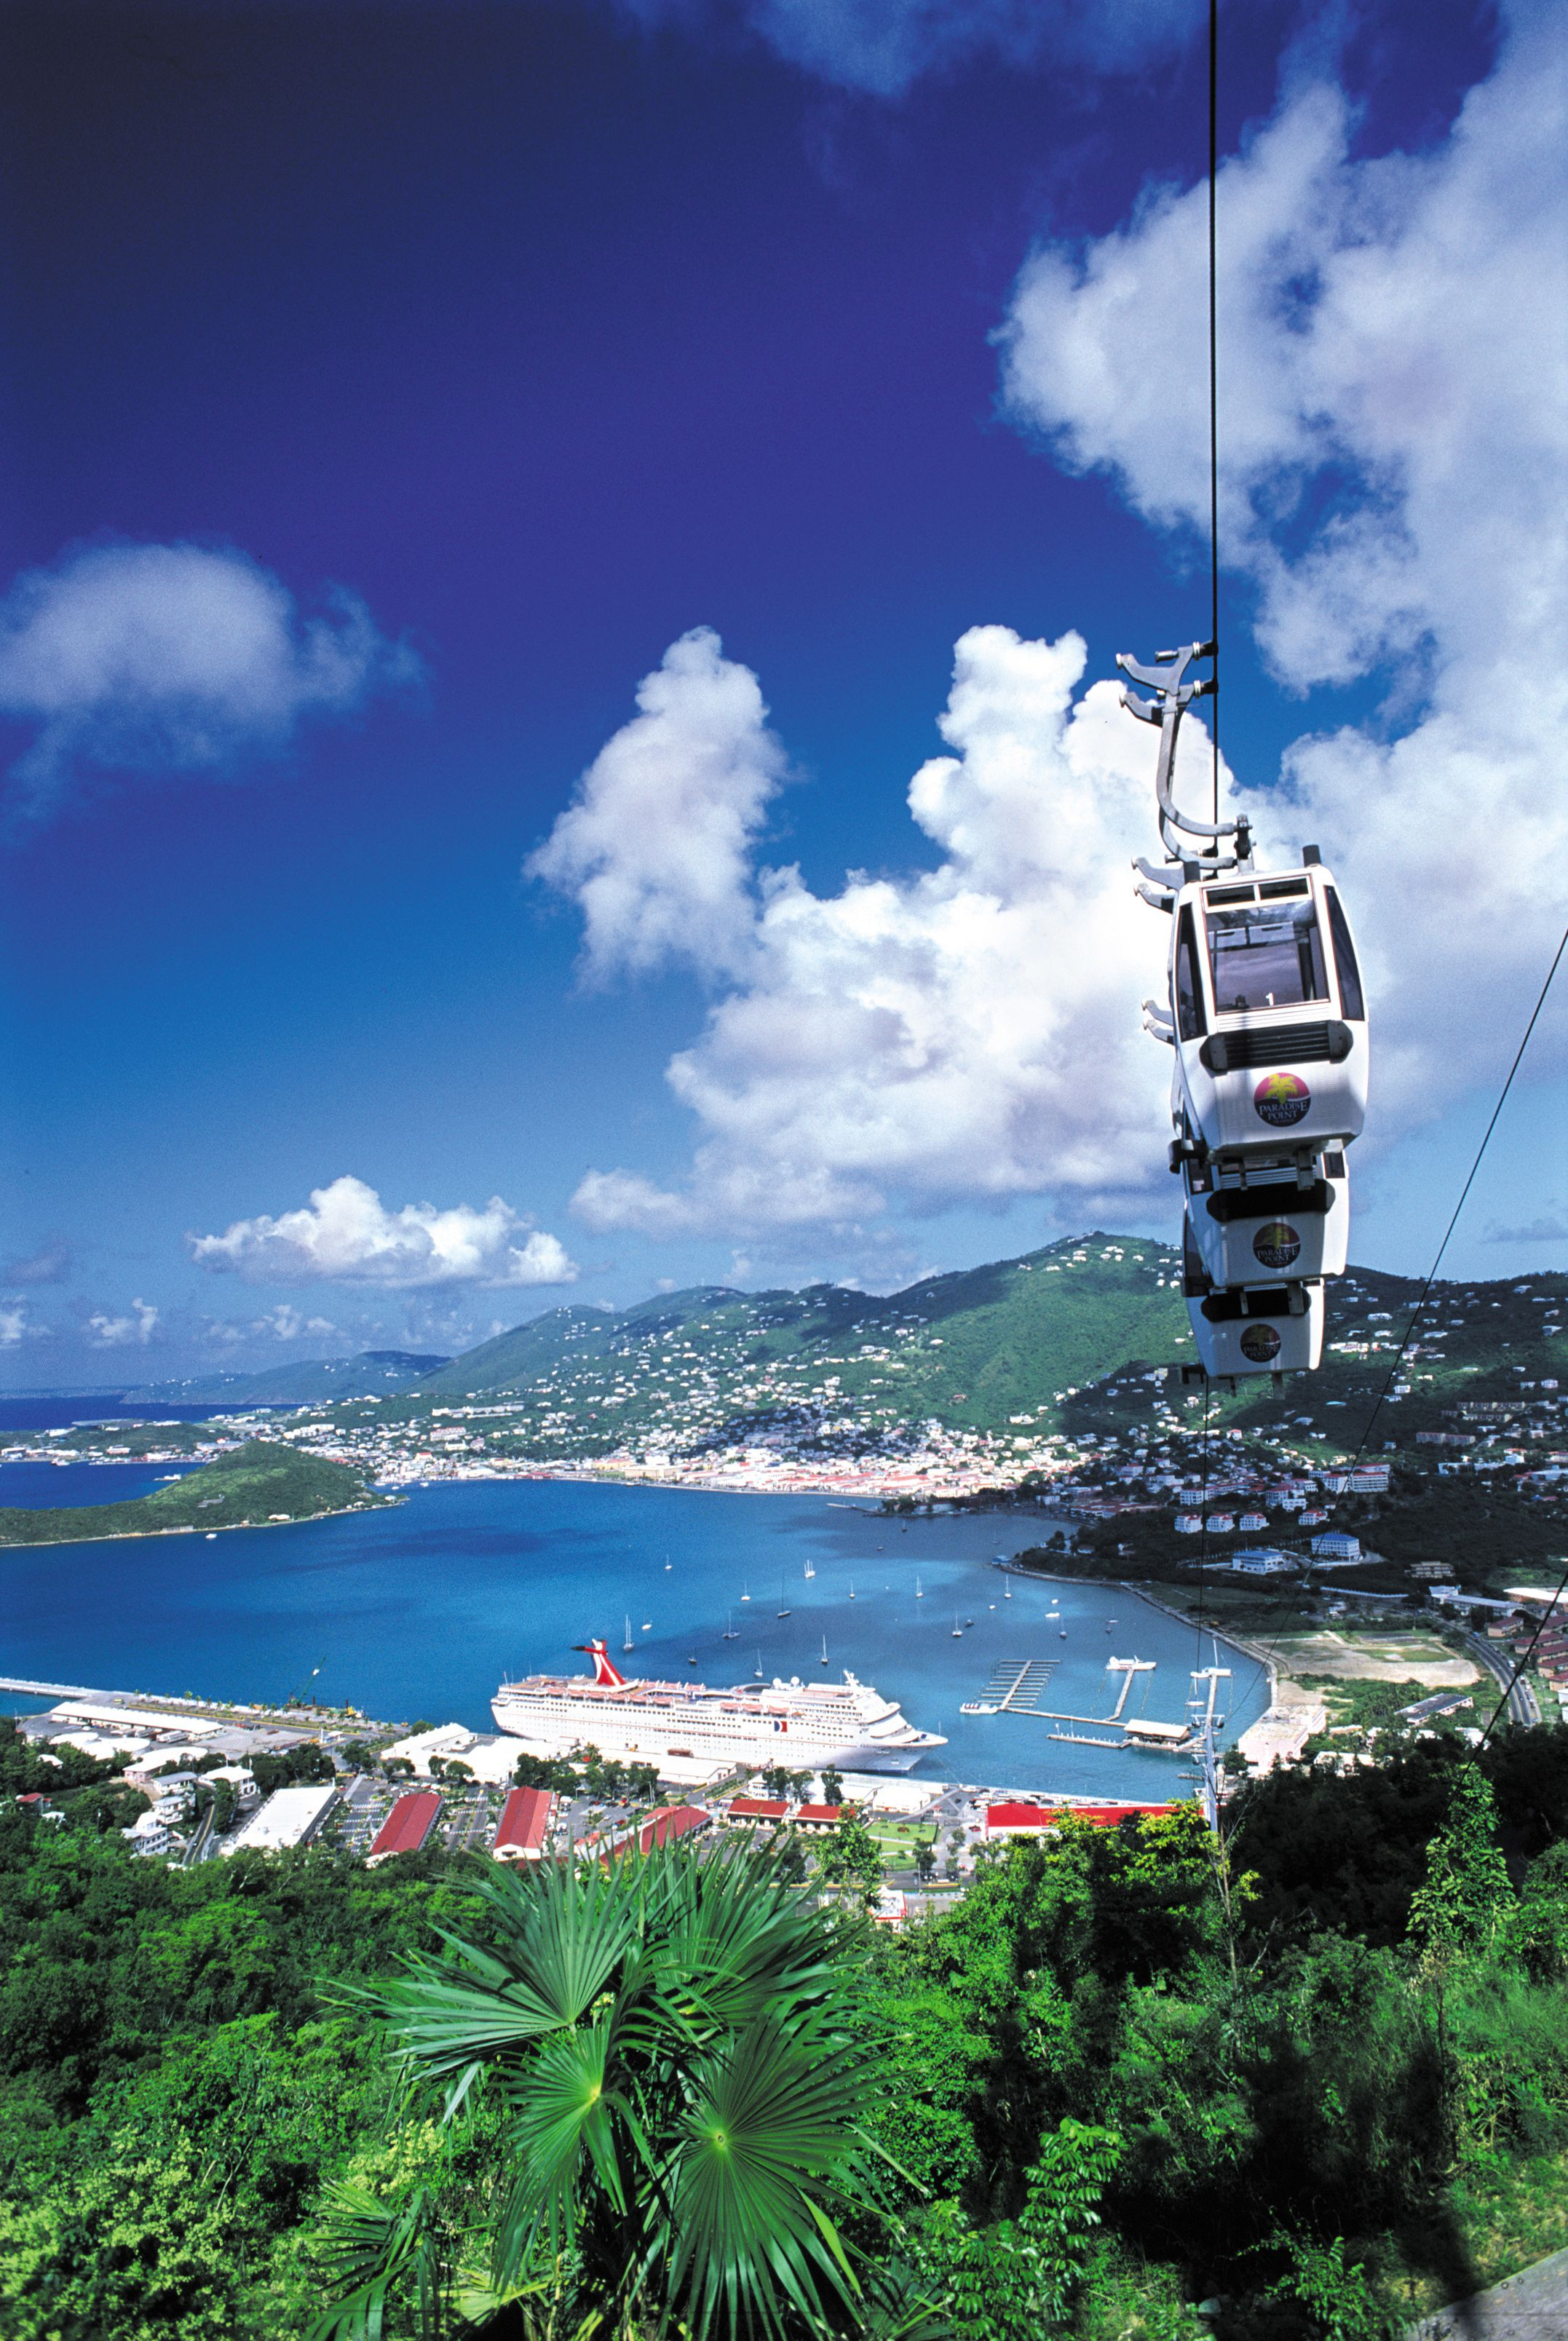 Islands Of The World Fashion Week 2012: Travel Guide On St. Thomas In The U.S. Virgin Islands